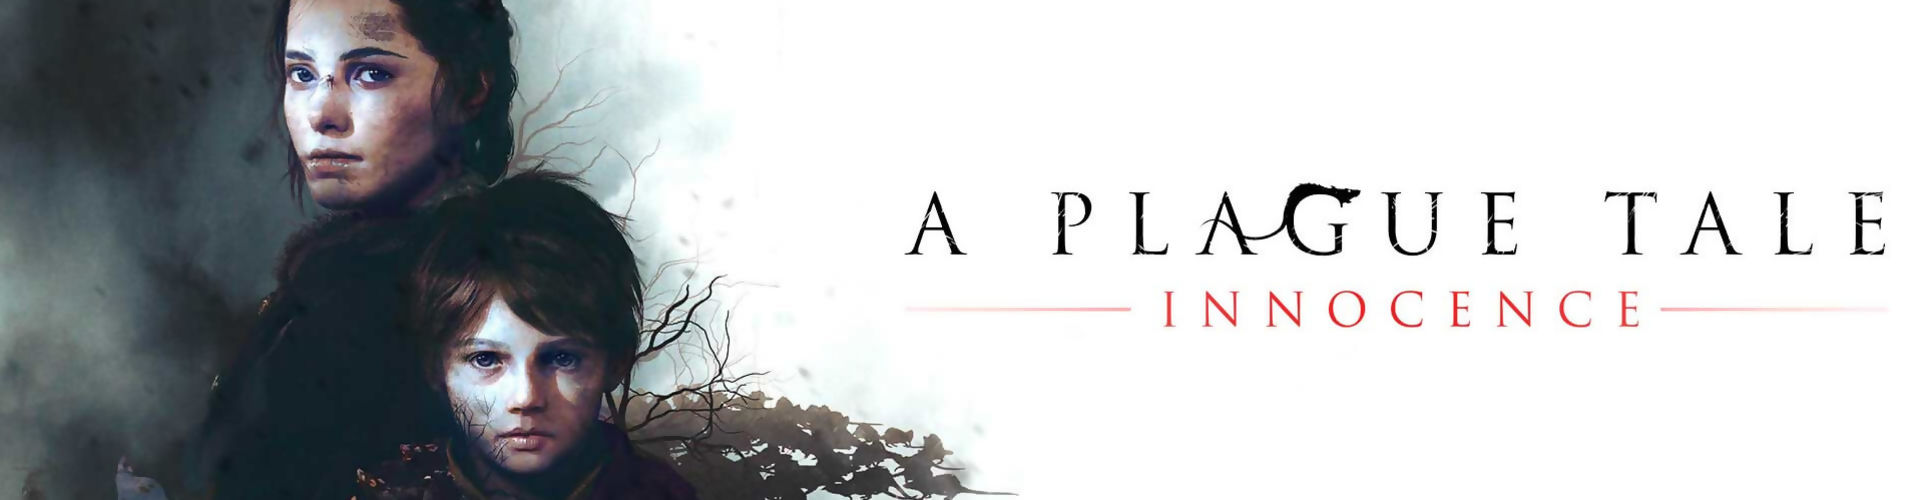 A Plague Tale: Innocence reviews are here